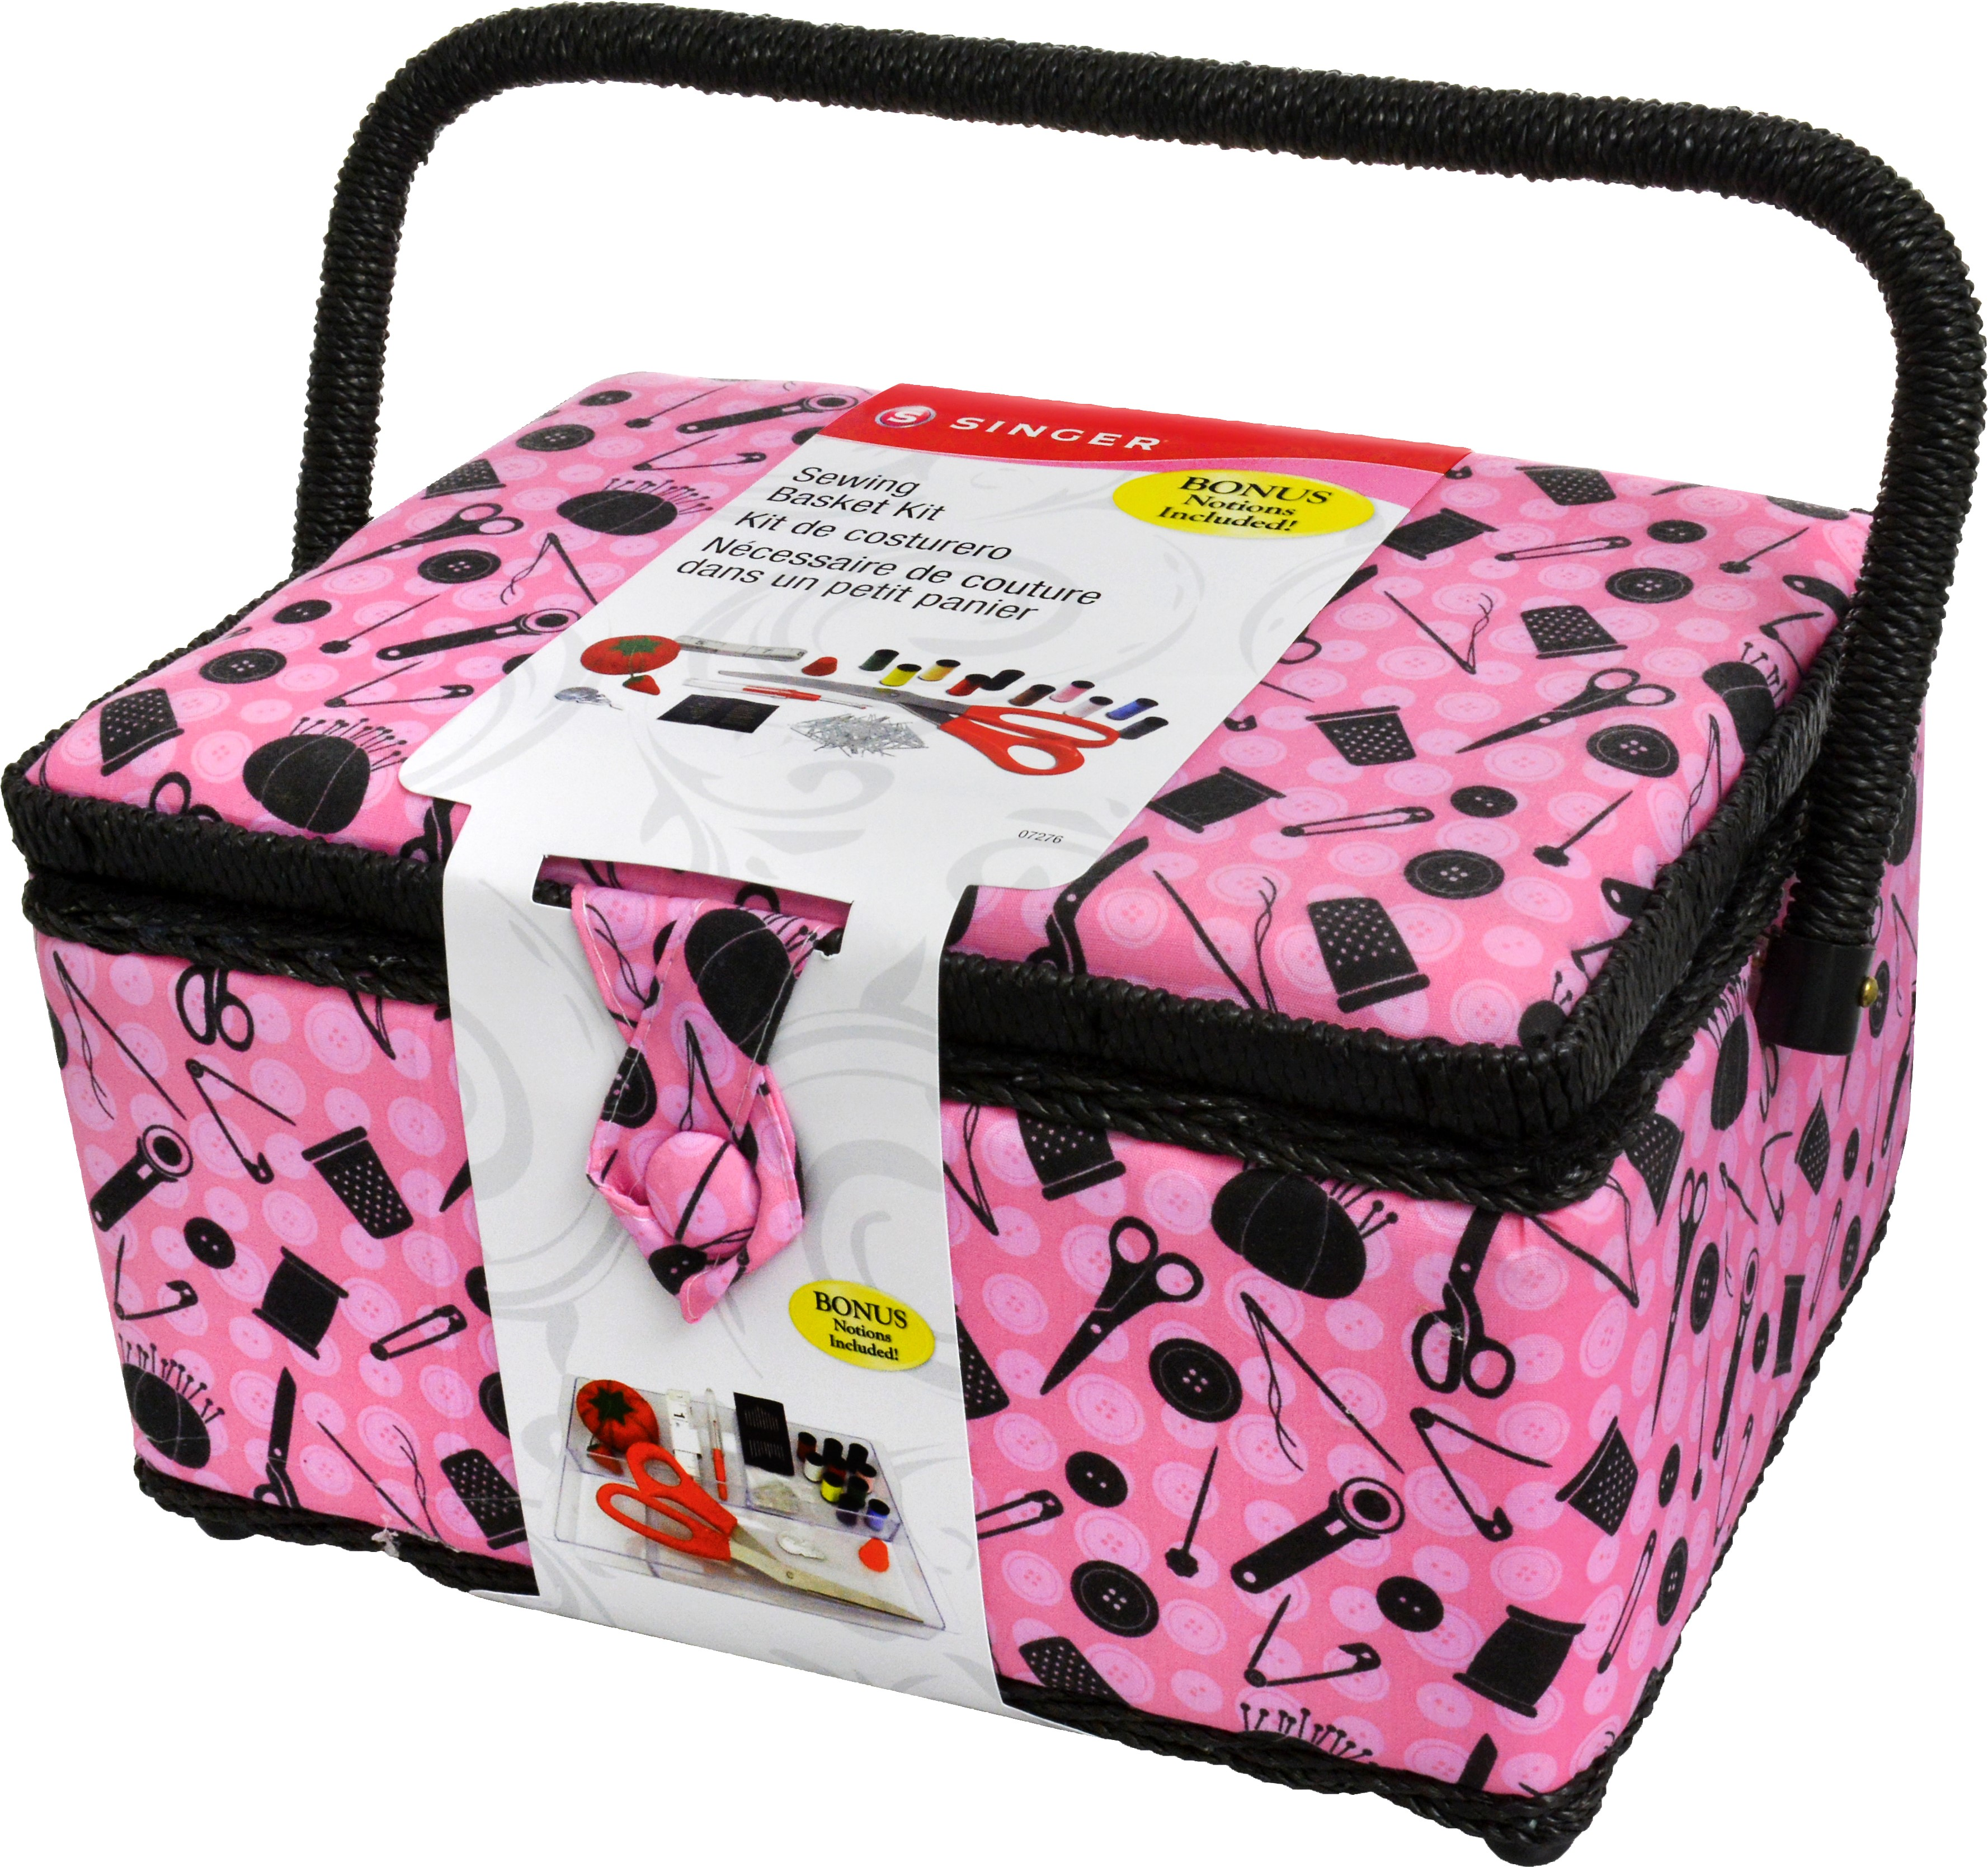 Singer Sewing Basket with Sewing Kit Accessories, 127 Pieces